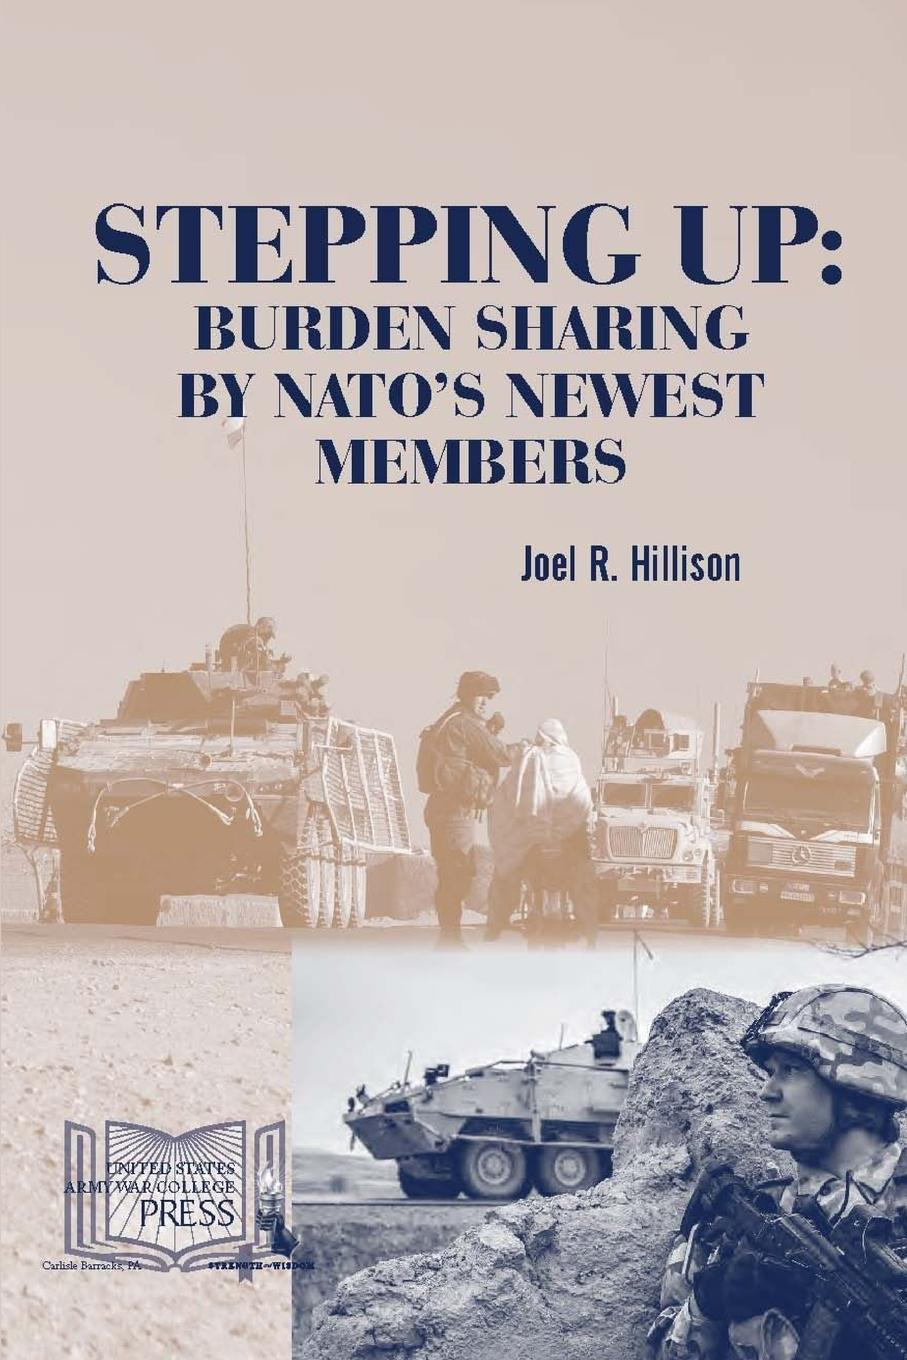 Strategic Studies Institute, U.S. Army War College, Joel R. Hillison Stepping Up. Burden Sharing by NATO.s Newest Members цена и фото